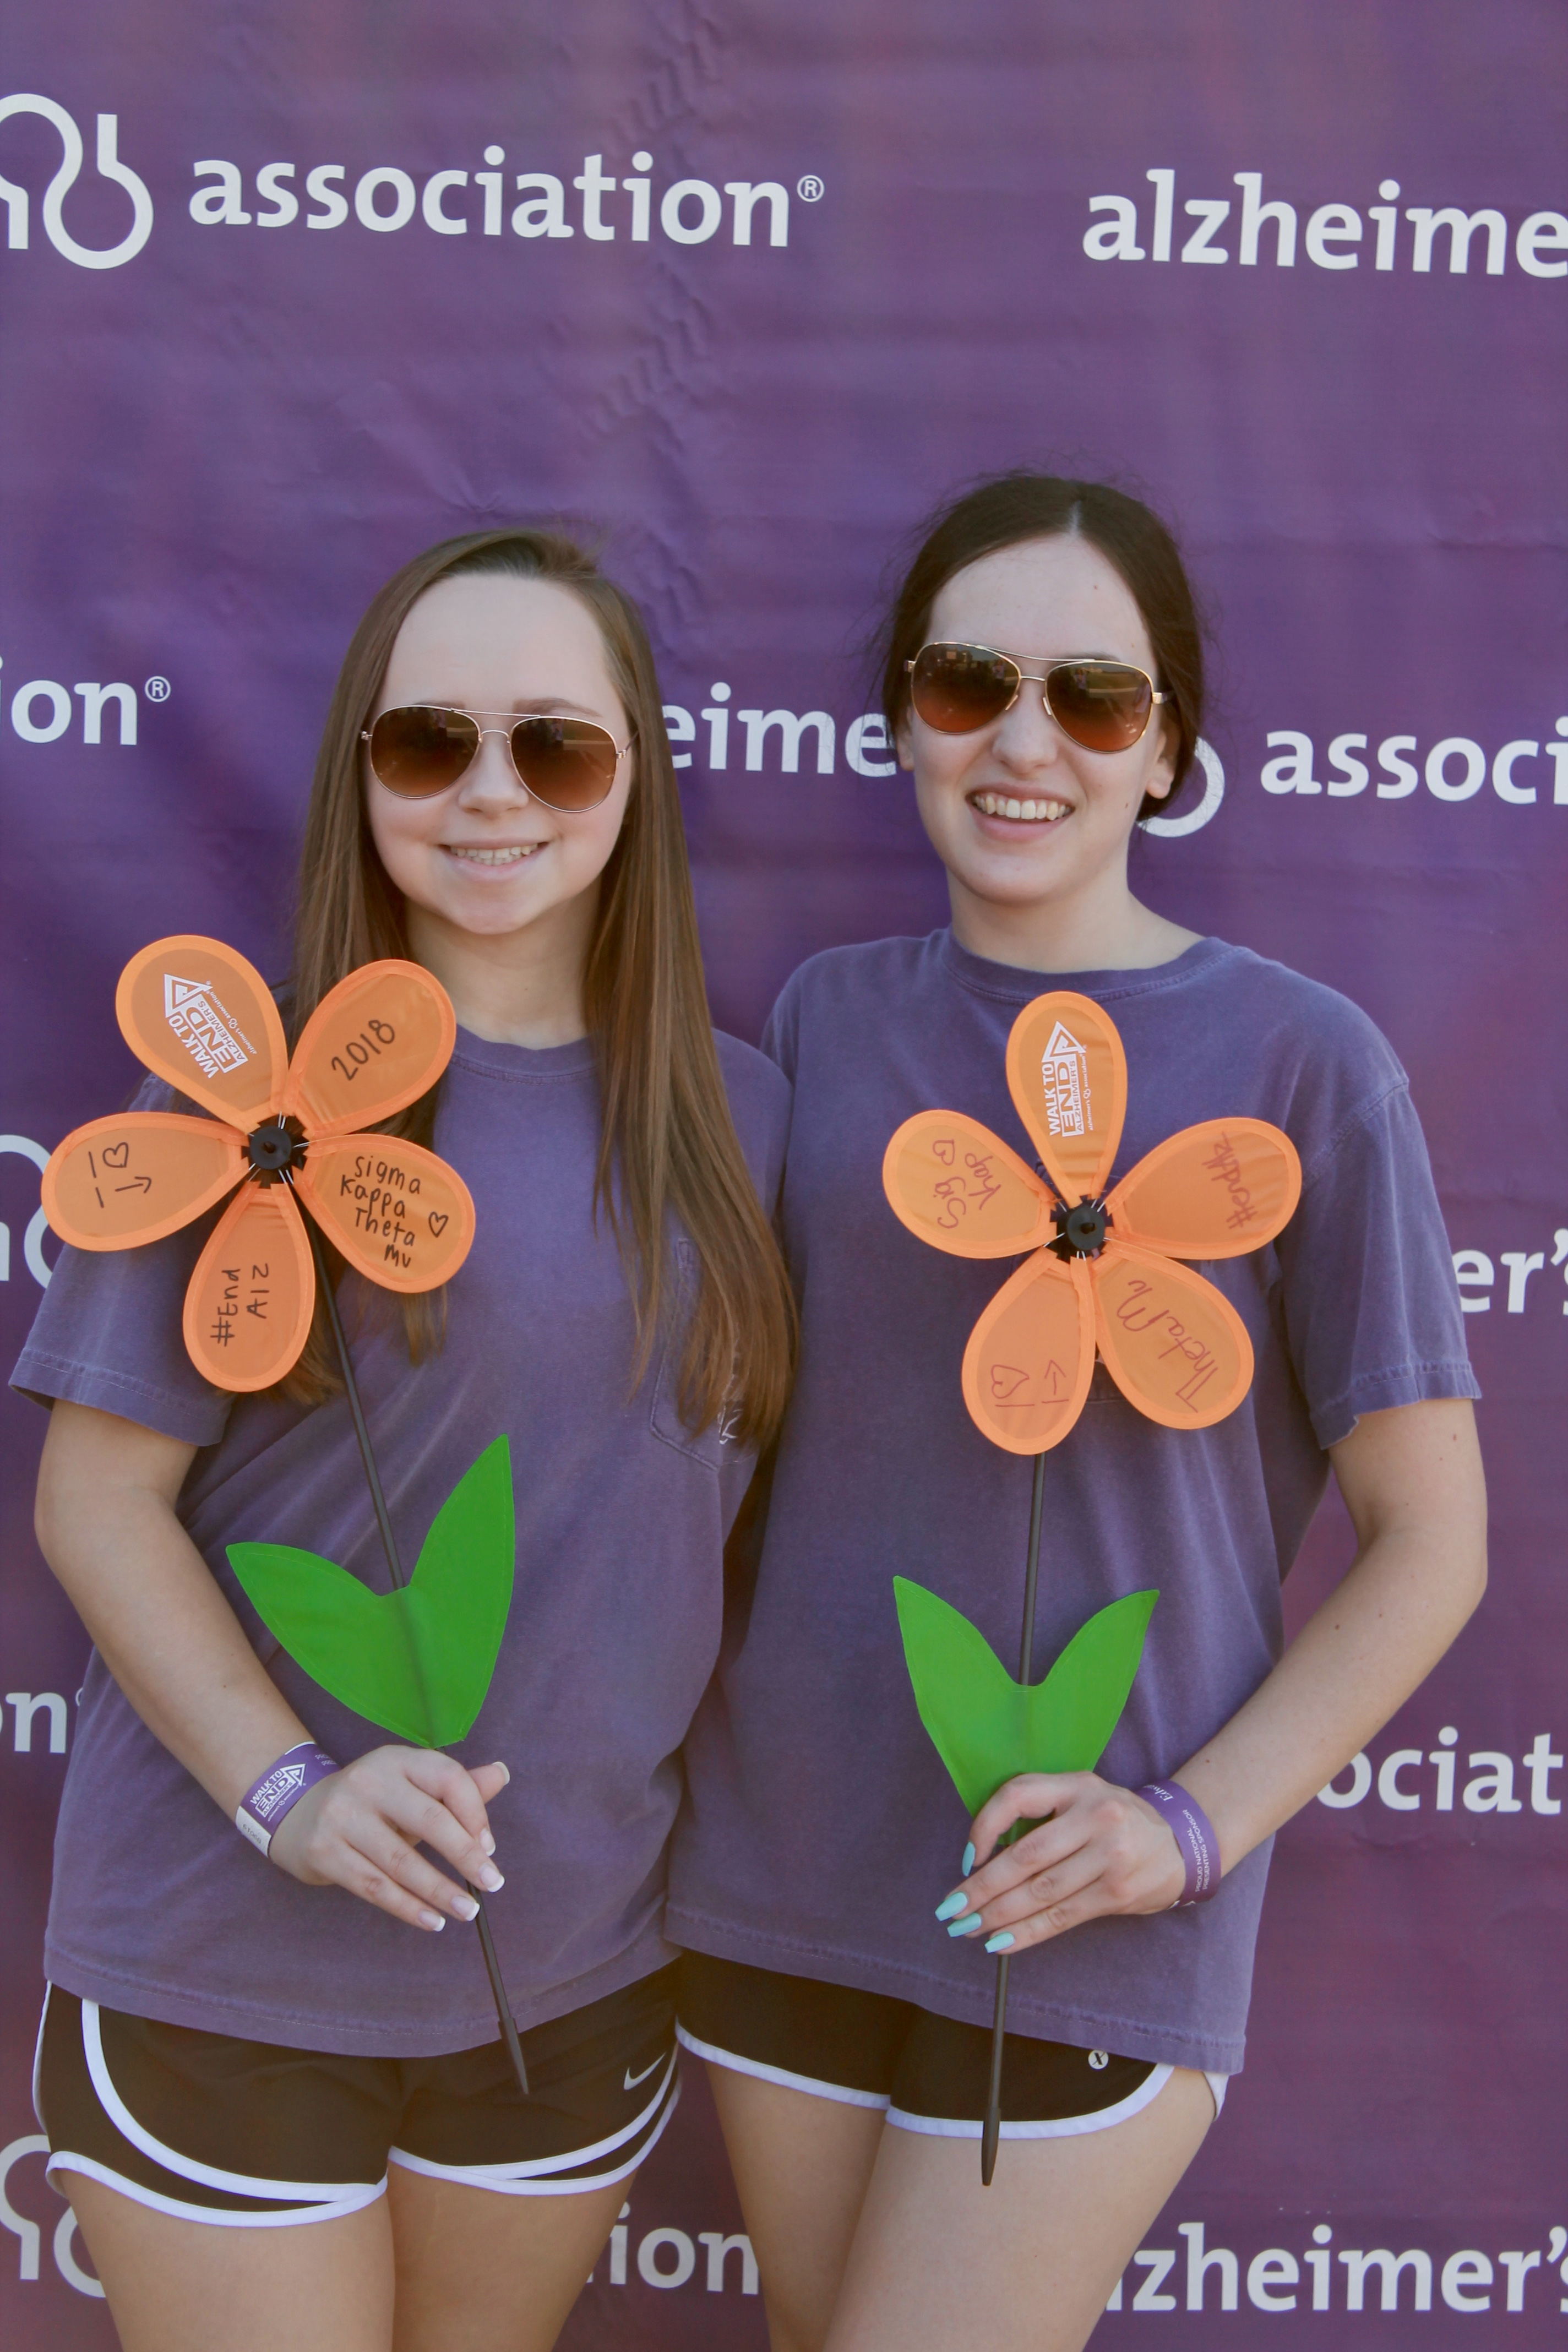 Walk to End Alzheimers 2018